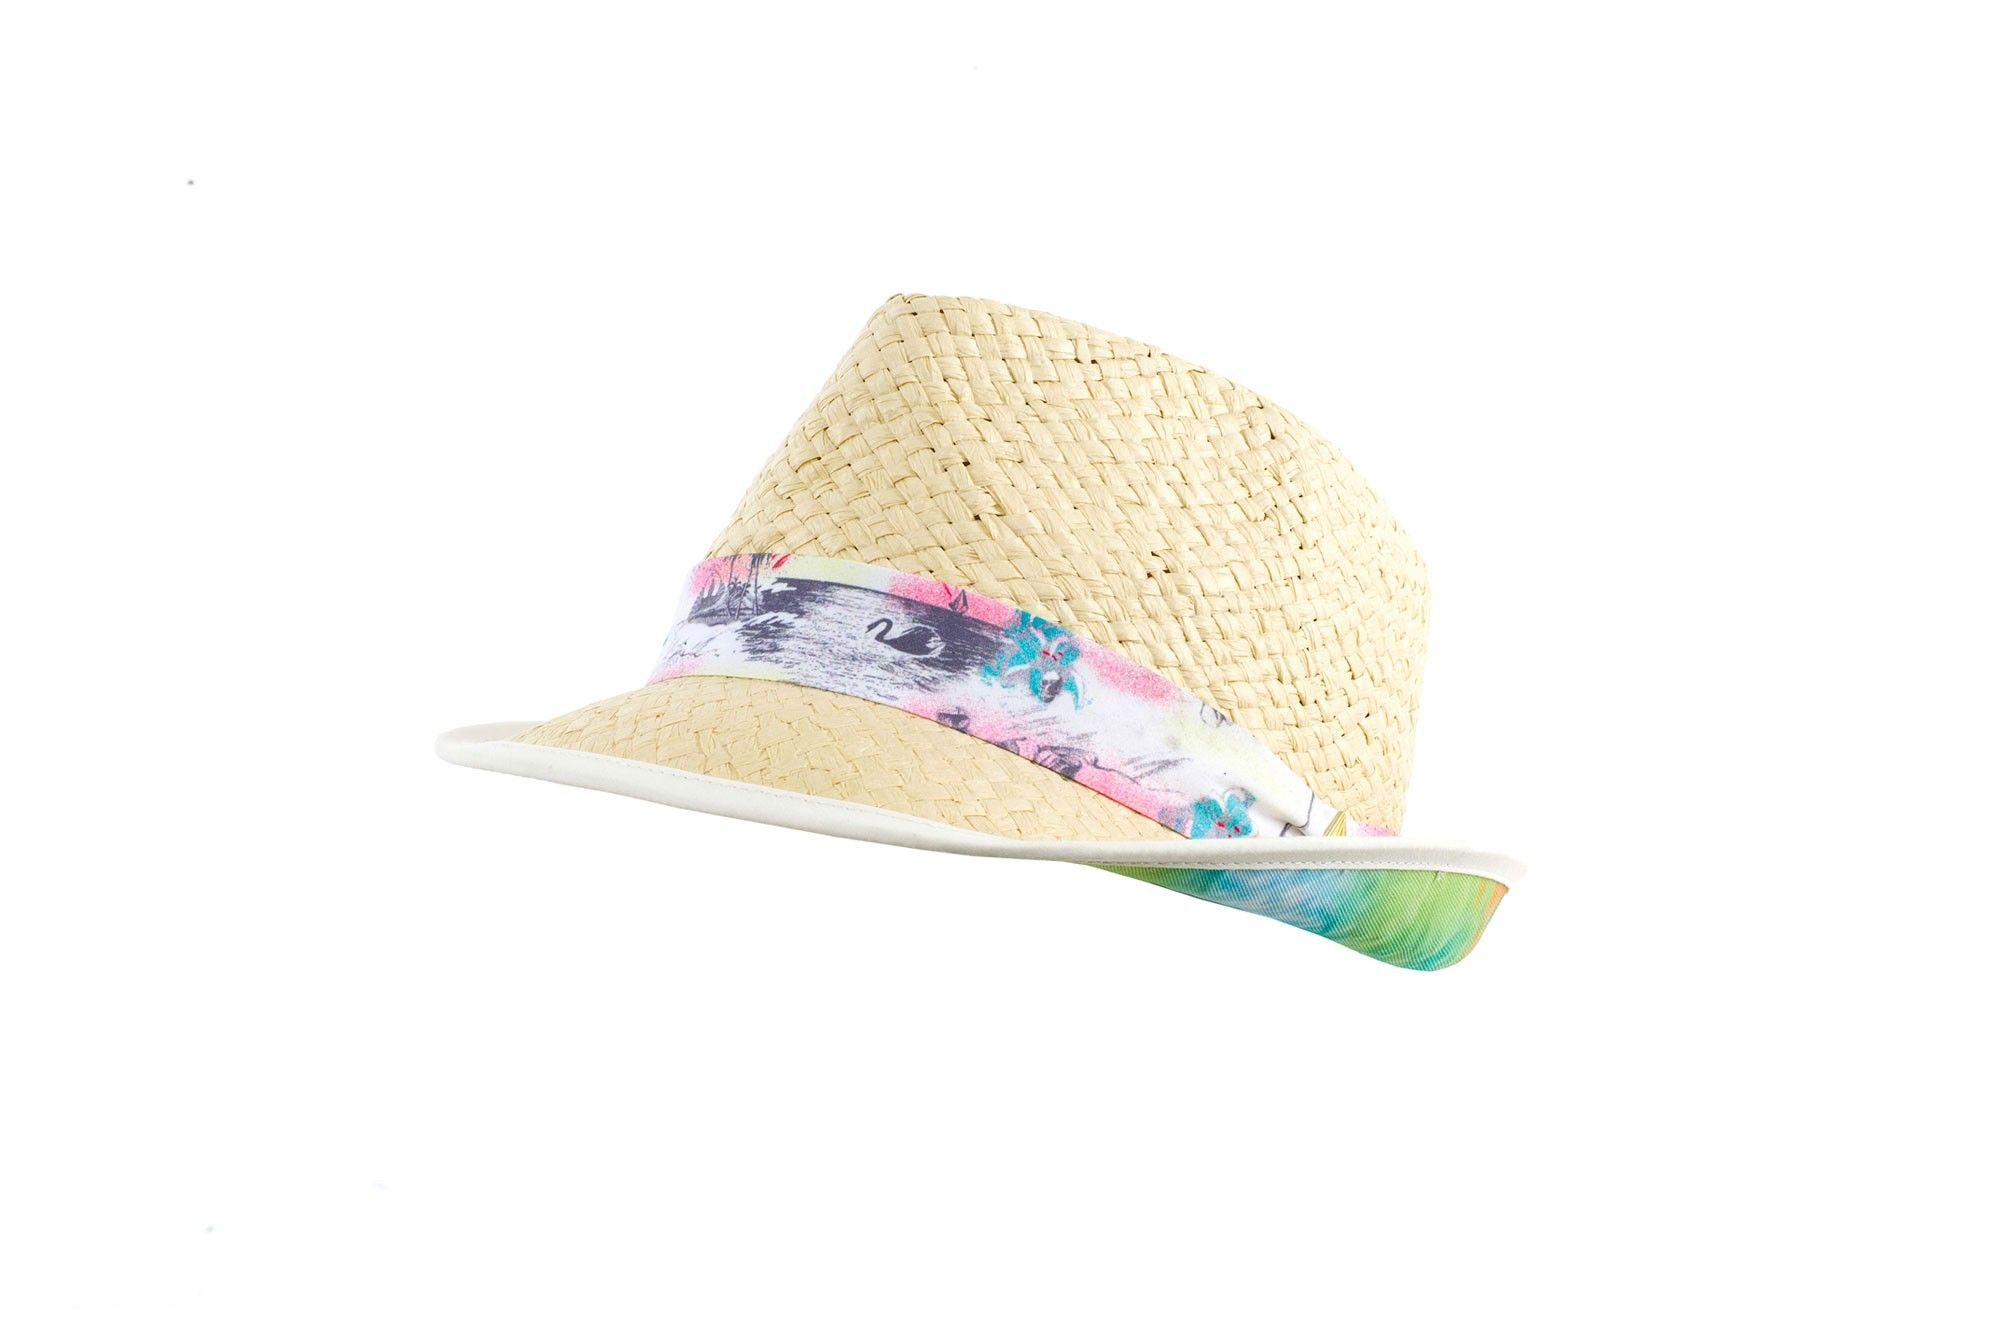 c033f2328c9ea Kadeiloscope Straw Fedora - Keep the sun off while looking cool in the  oversized straw Kaleidoscope